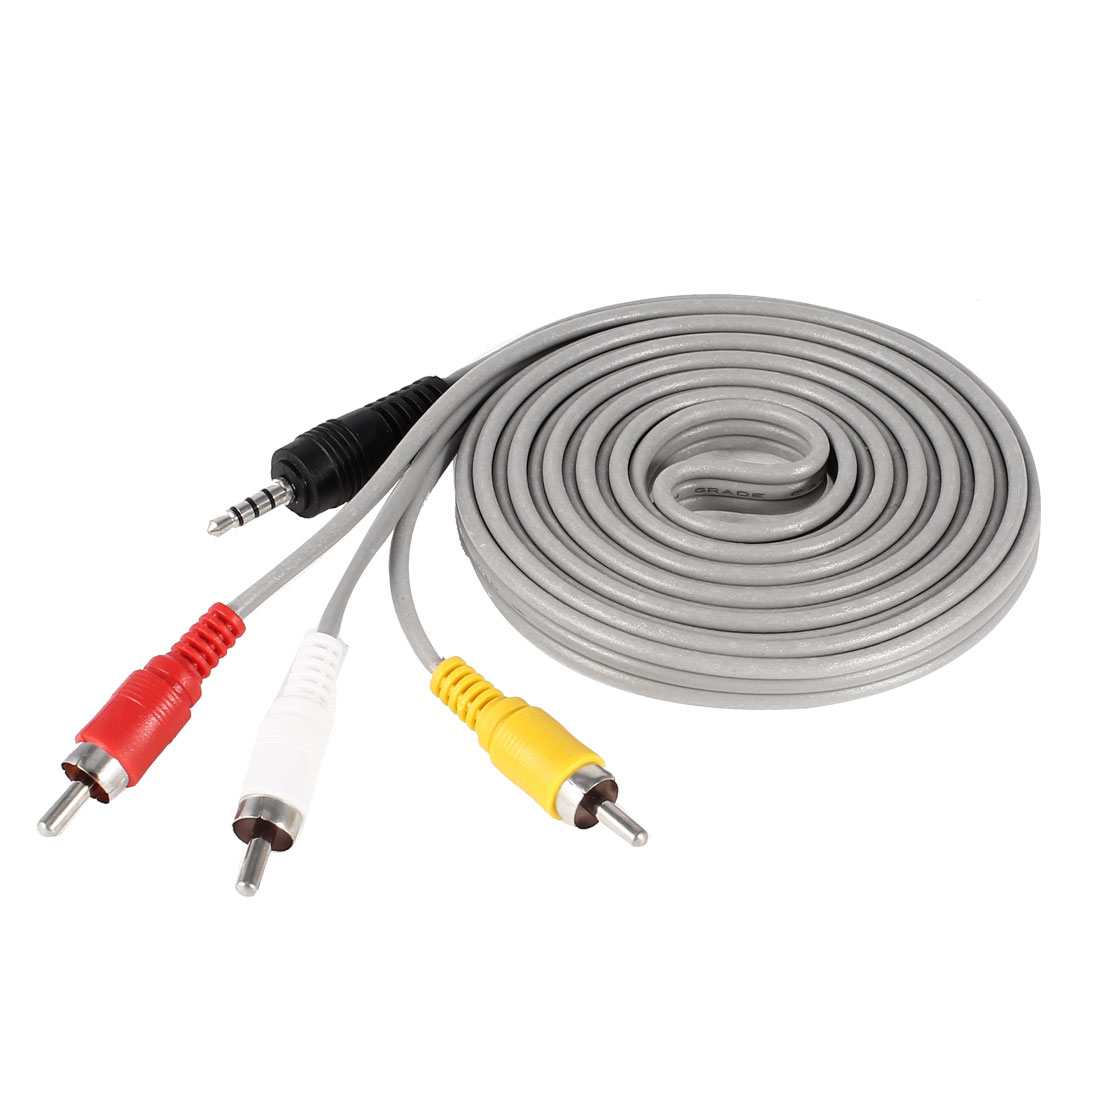 3.5mm Stereo Mini AV to 3 RCA Male Audio Video Adapter Cable Gray 10Ft